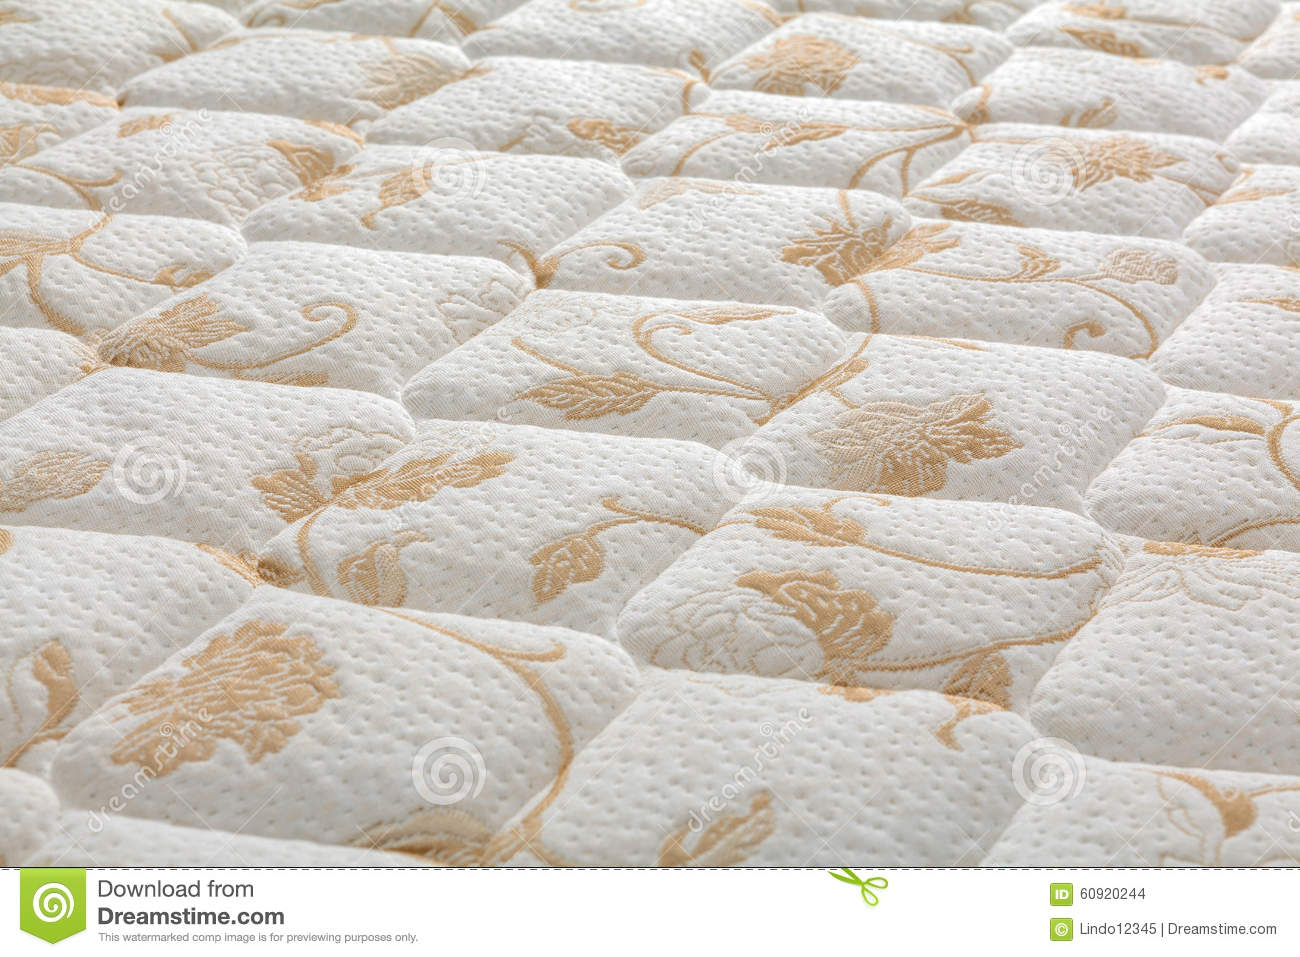 mattress texture. Brand New Clean Mattress Cover Surface. Texture In 3D Fiber G